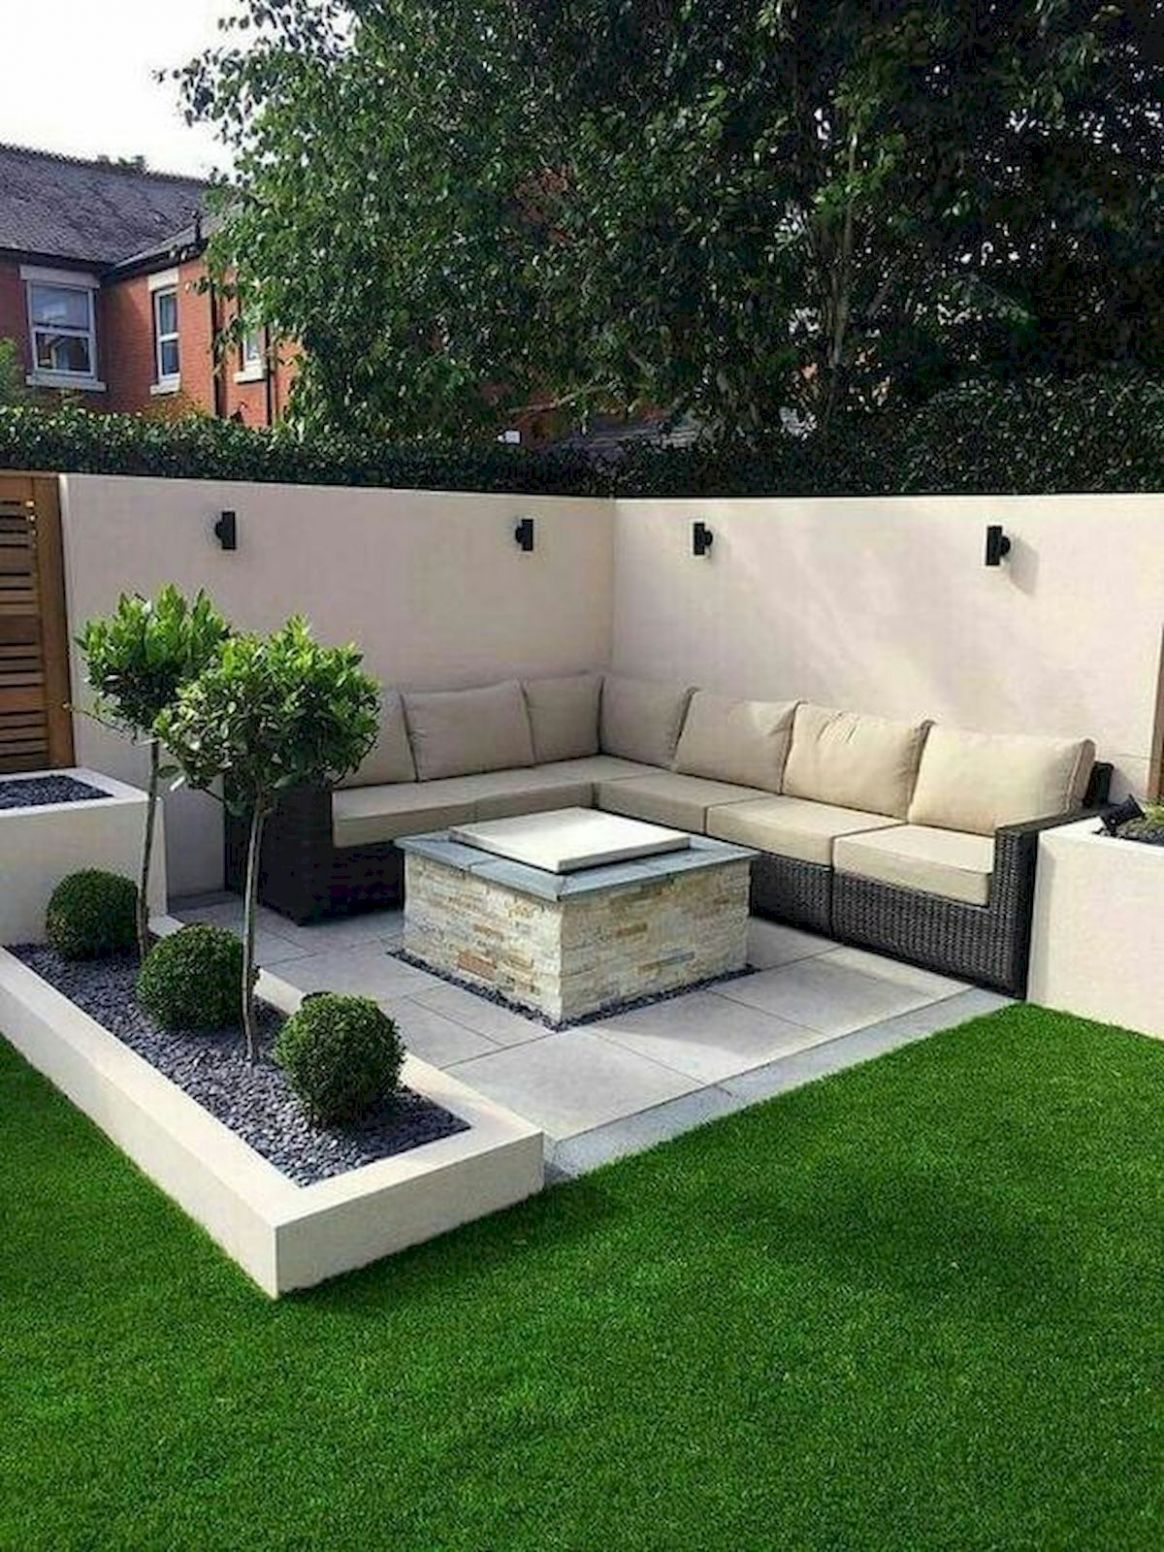 simple landscaping ideas on a budget 11 ..